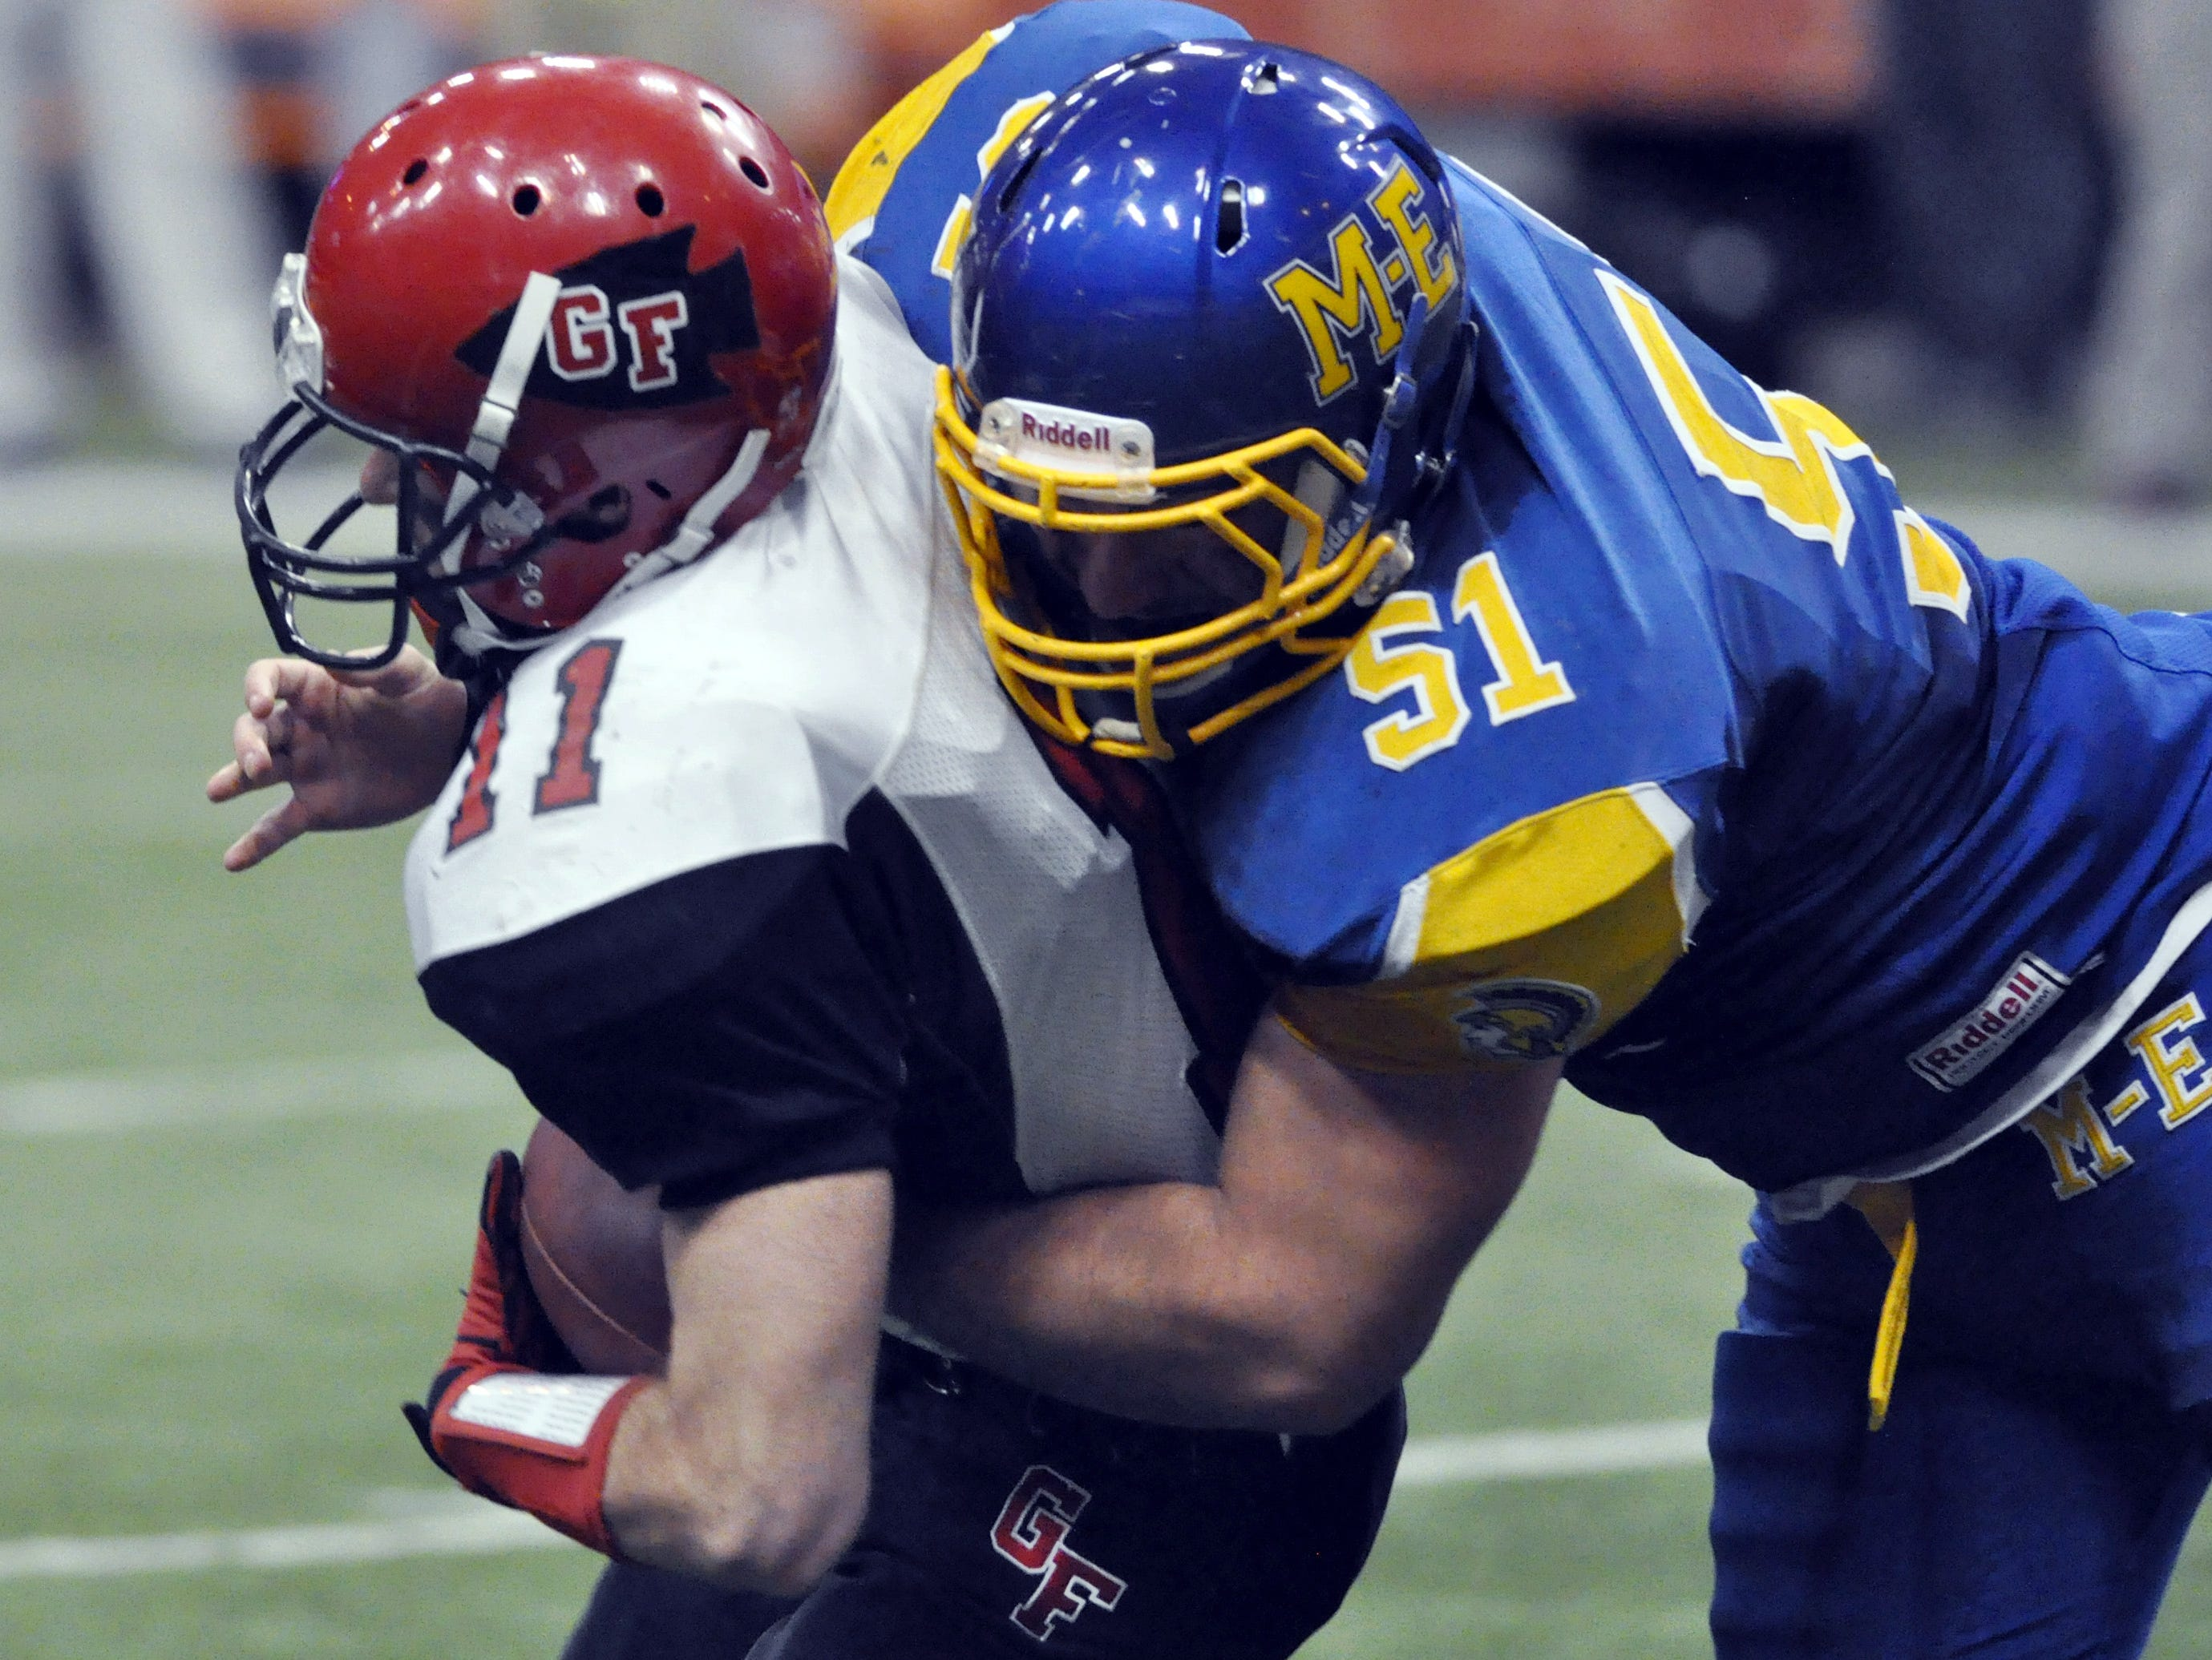 Maine-Endwell's Jake Haddock sacks Glens Falls' Cam Girard in the Class B state final Nov. 24, 2012.